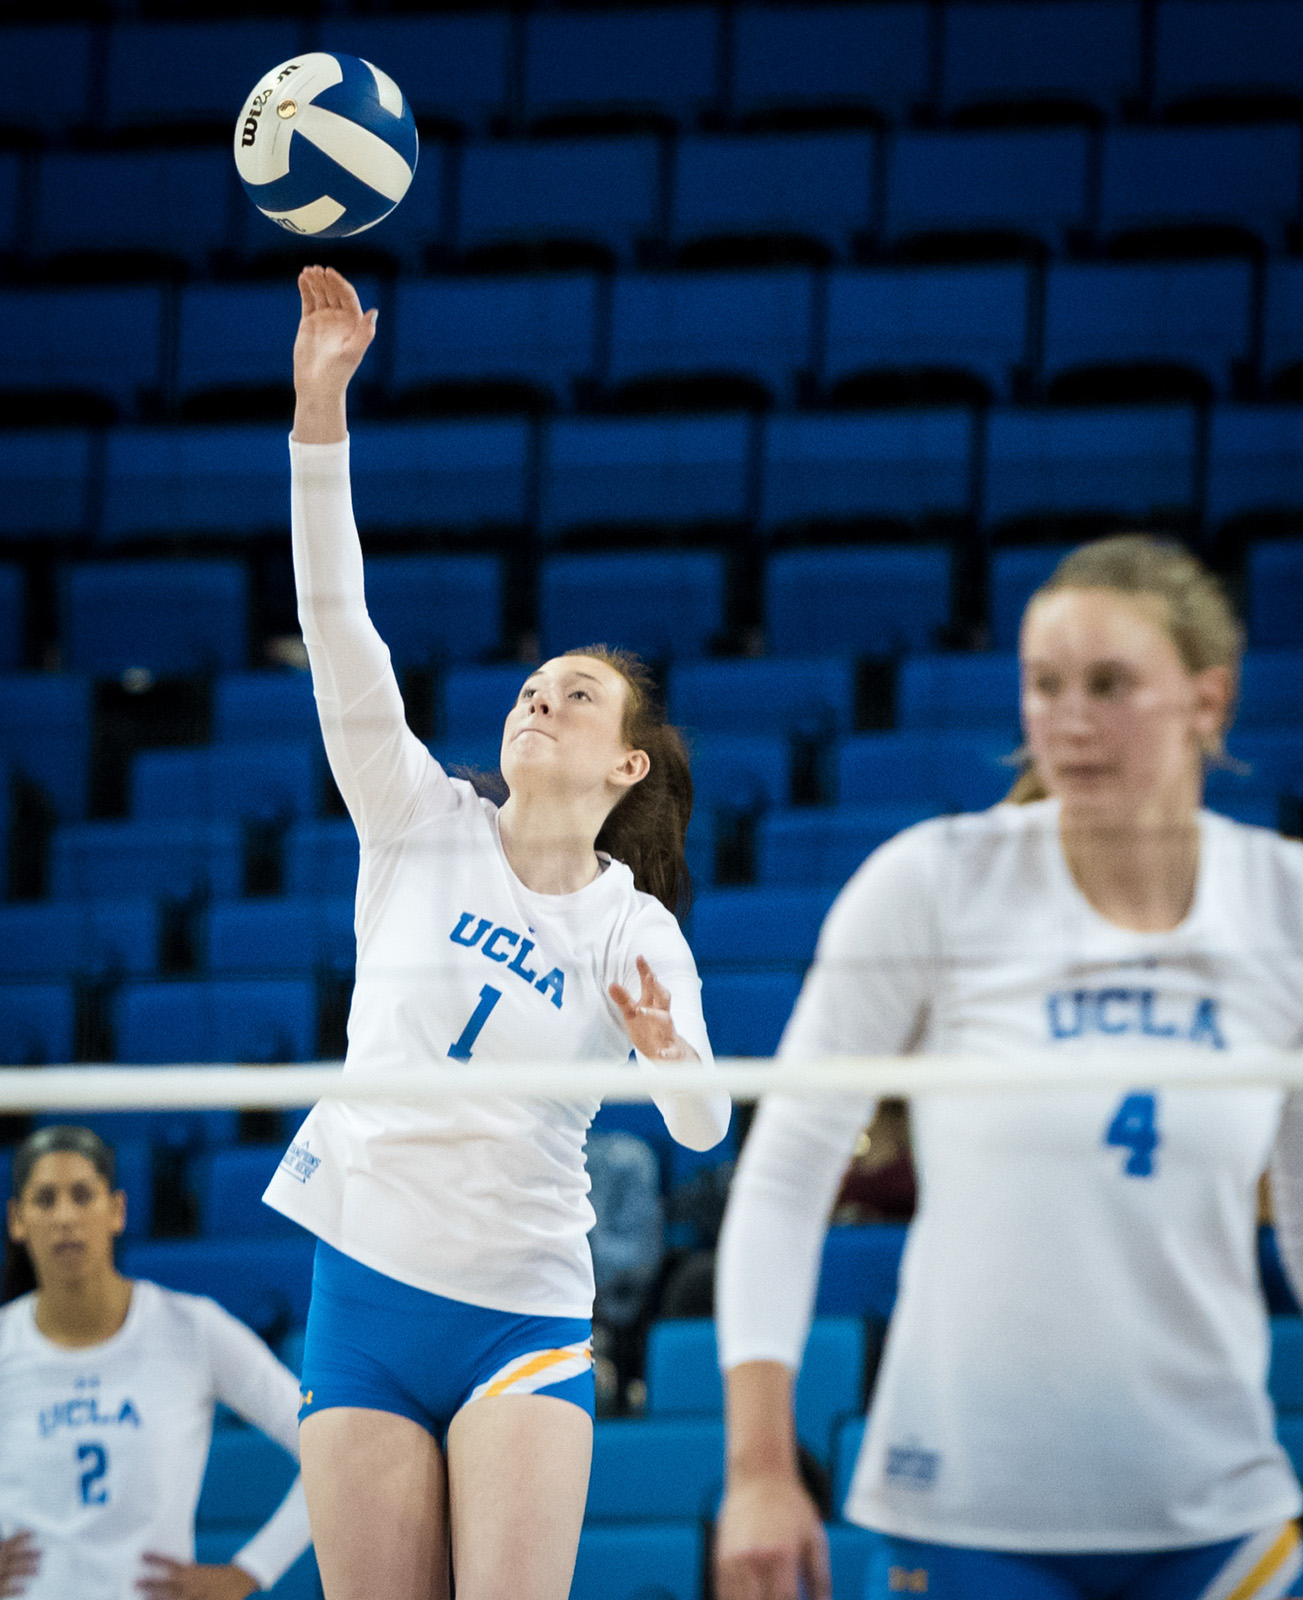 Women S Volleyball Has Mixed Record Going Into Play Against Ranked Pac 12 Teams Daily Bruin